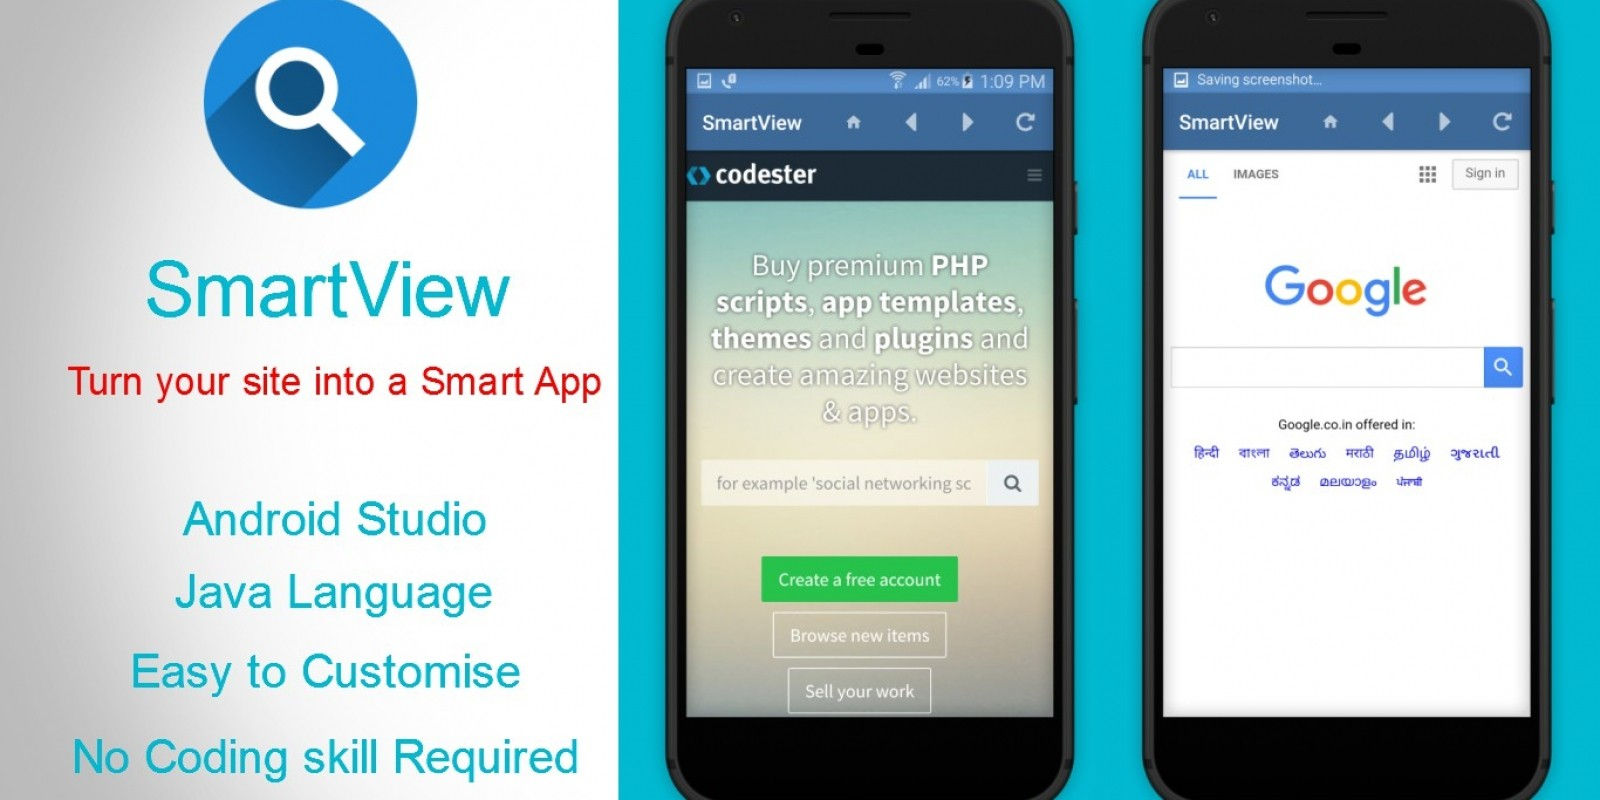 smartview webview app template for android